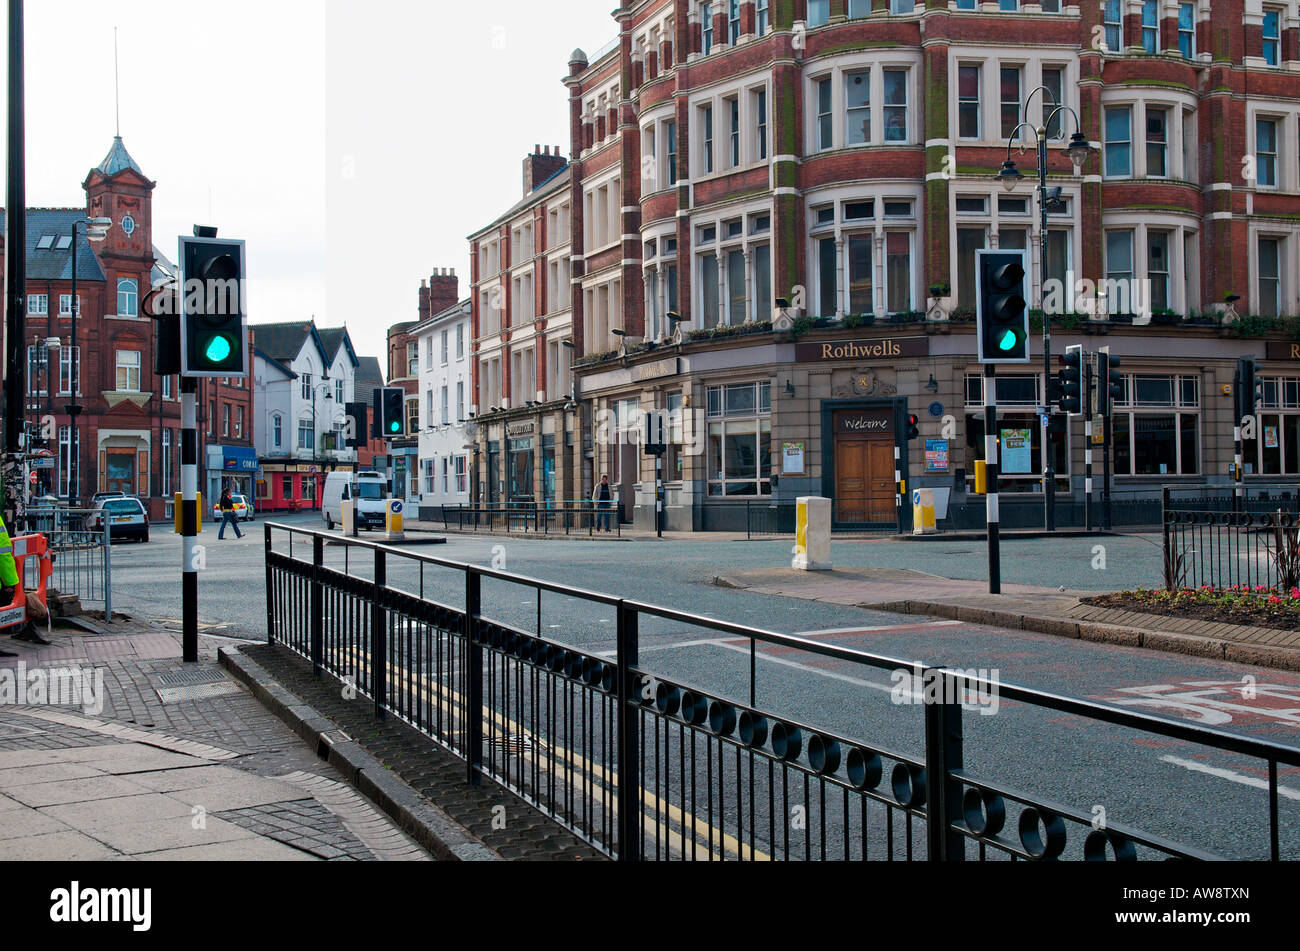 Location of the UK's first set of traffic lights in Wolverhampton - Stock Image